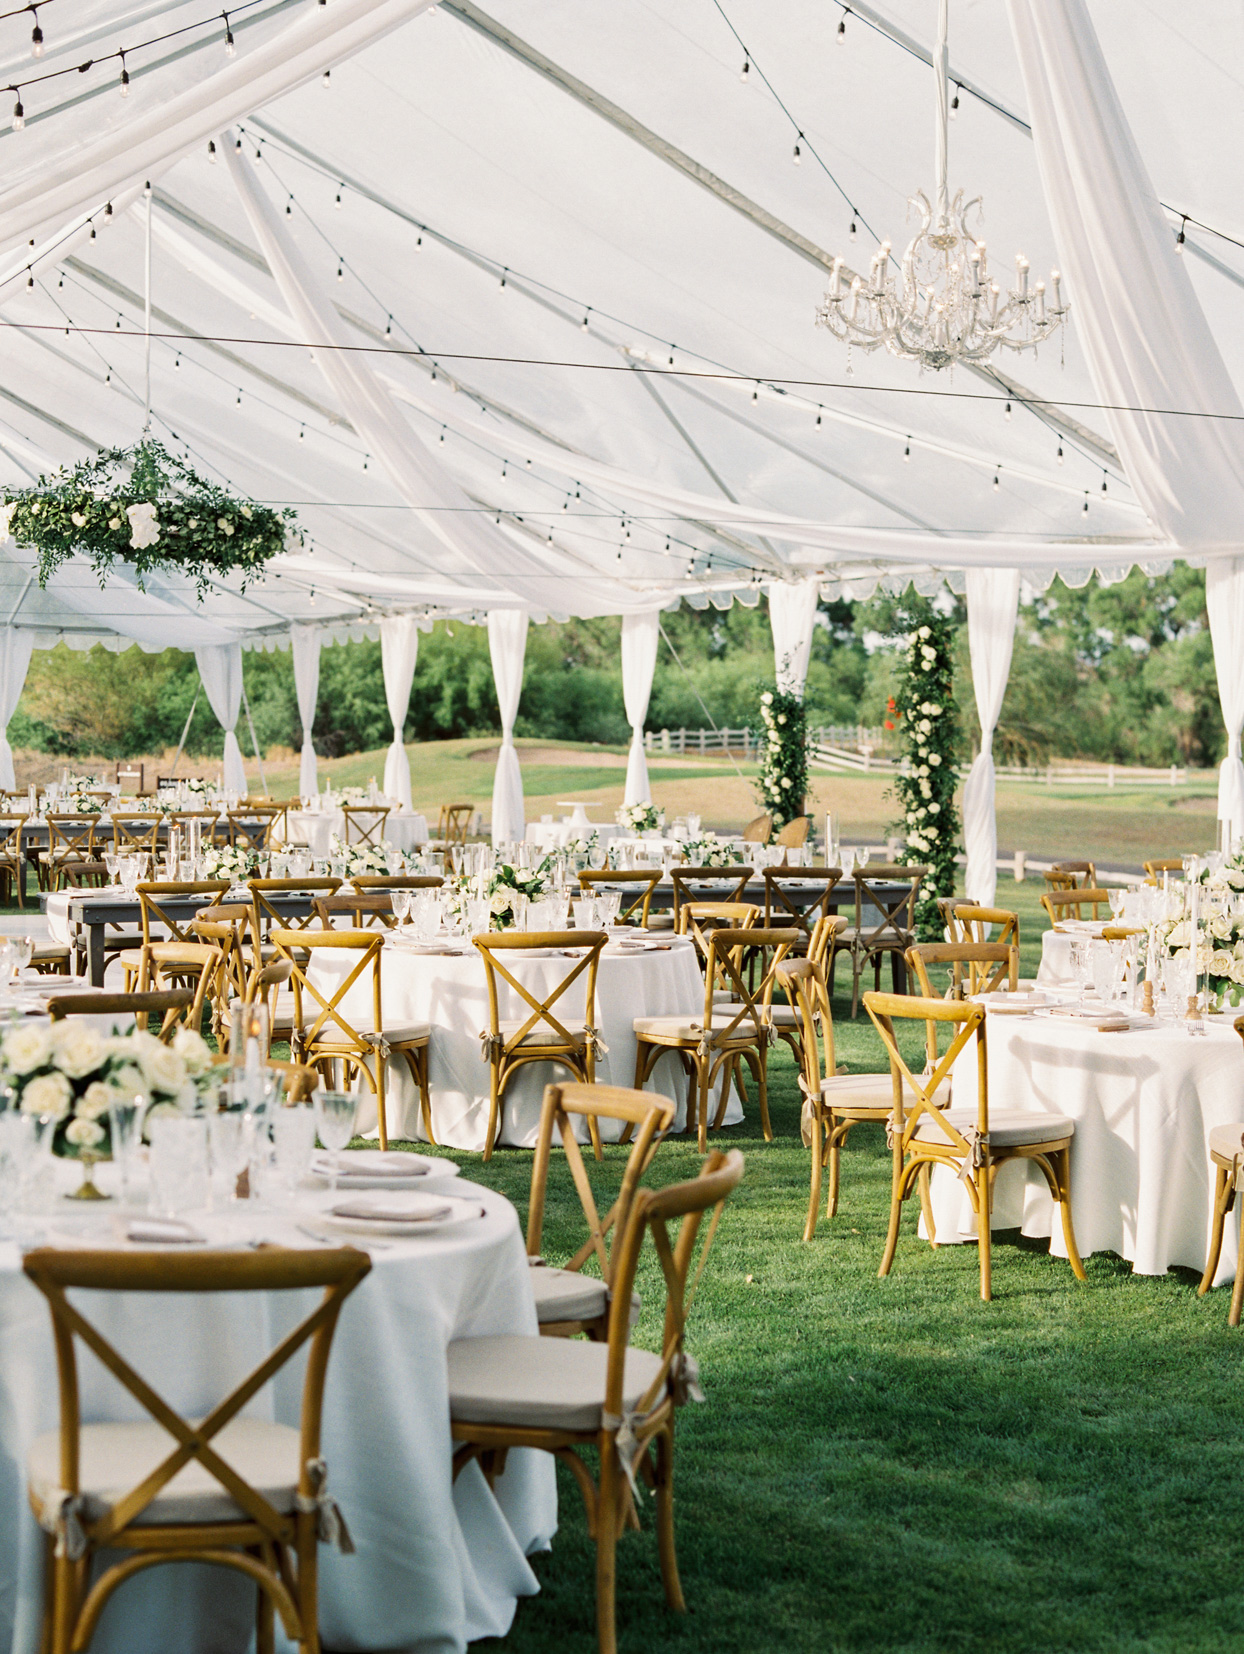 large white reception tent over white linen covered tables